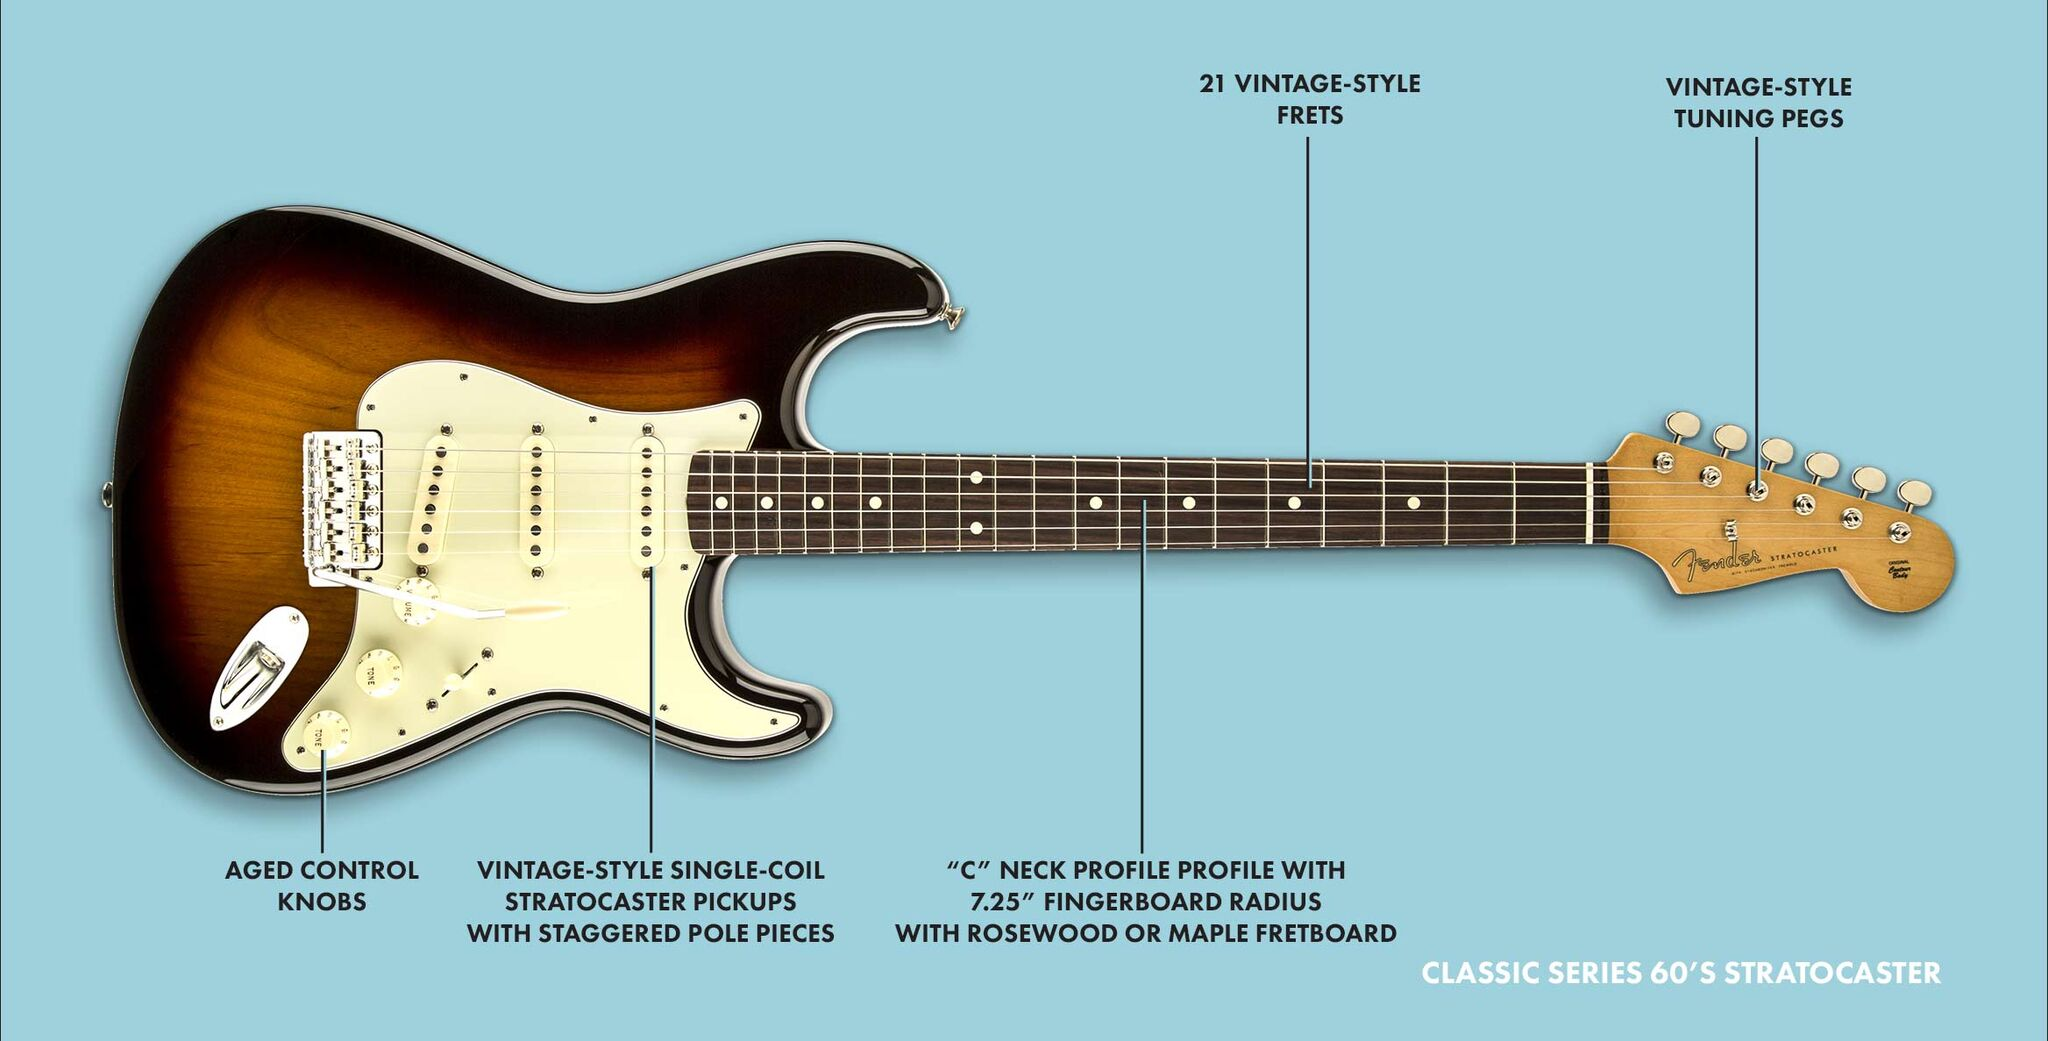 fender stratocaster buying guide 7 strat models compared. Black Bedroom Furniture Sets. Home Design Ideas